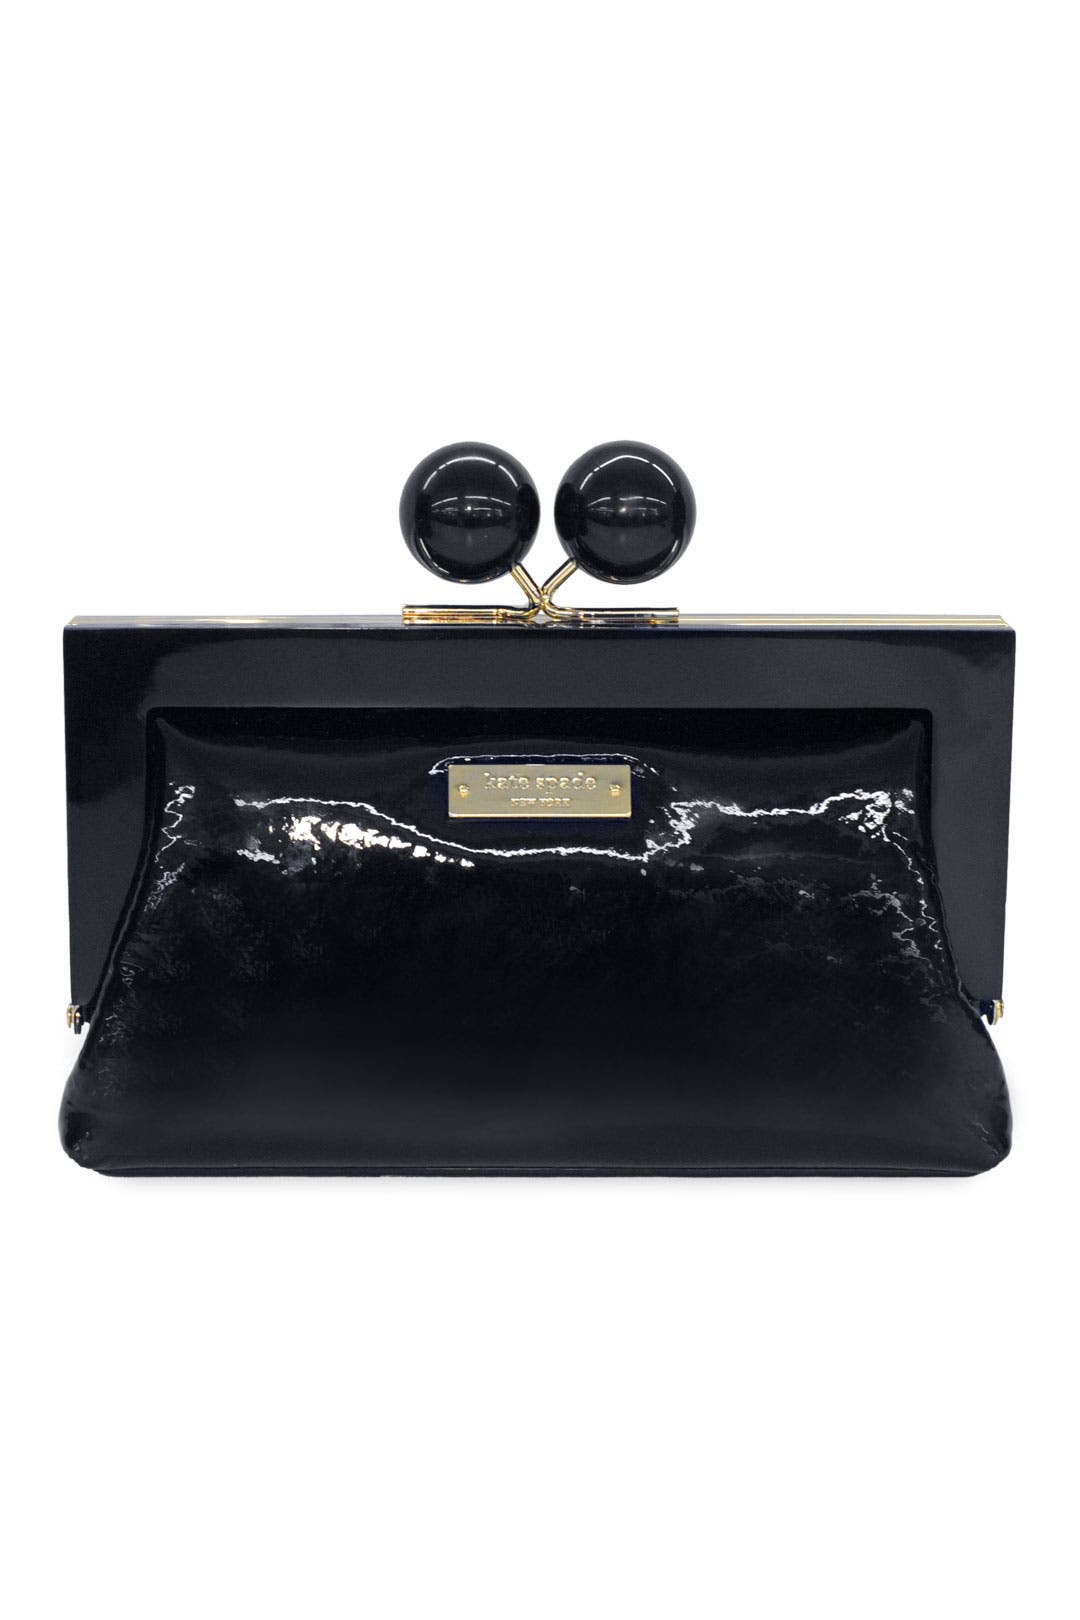 Noir Shyla Clutch by kate spade new york accessories